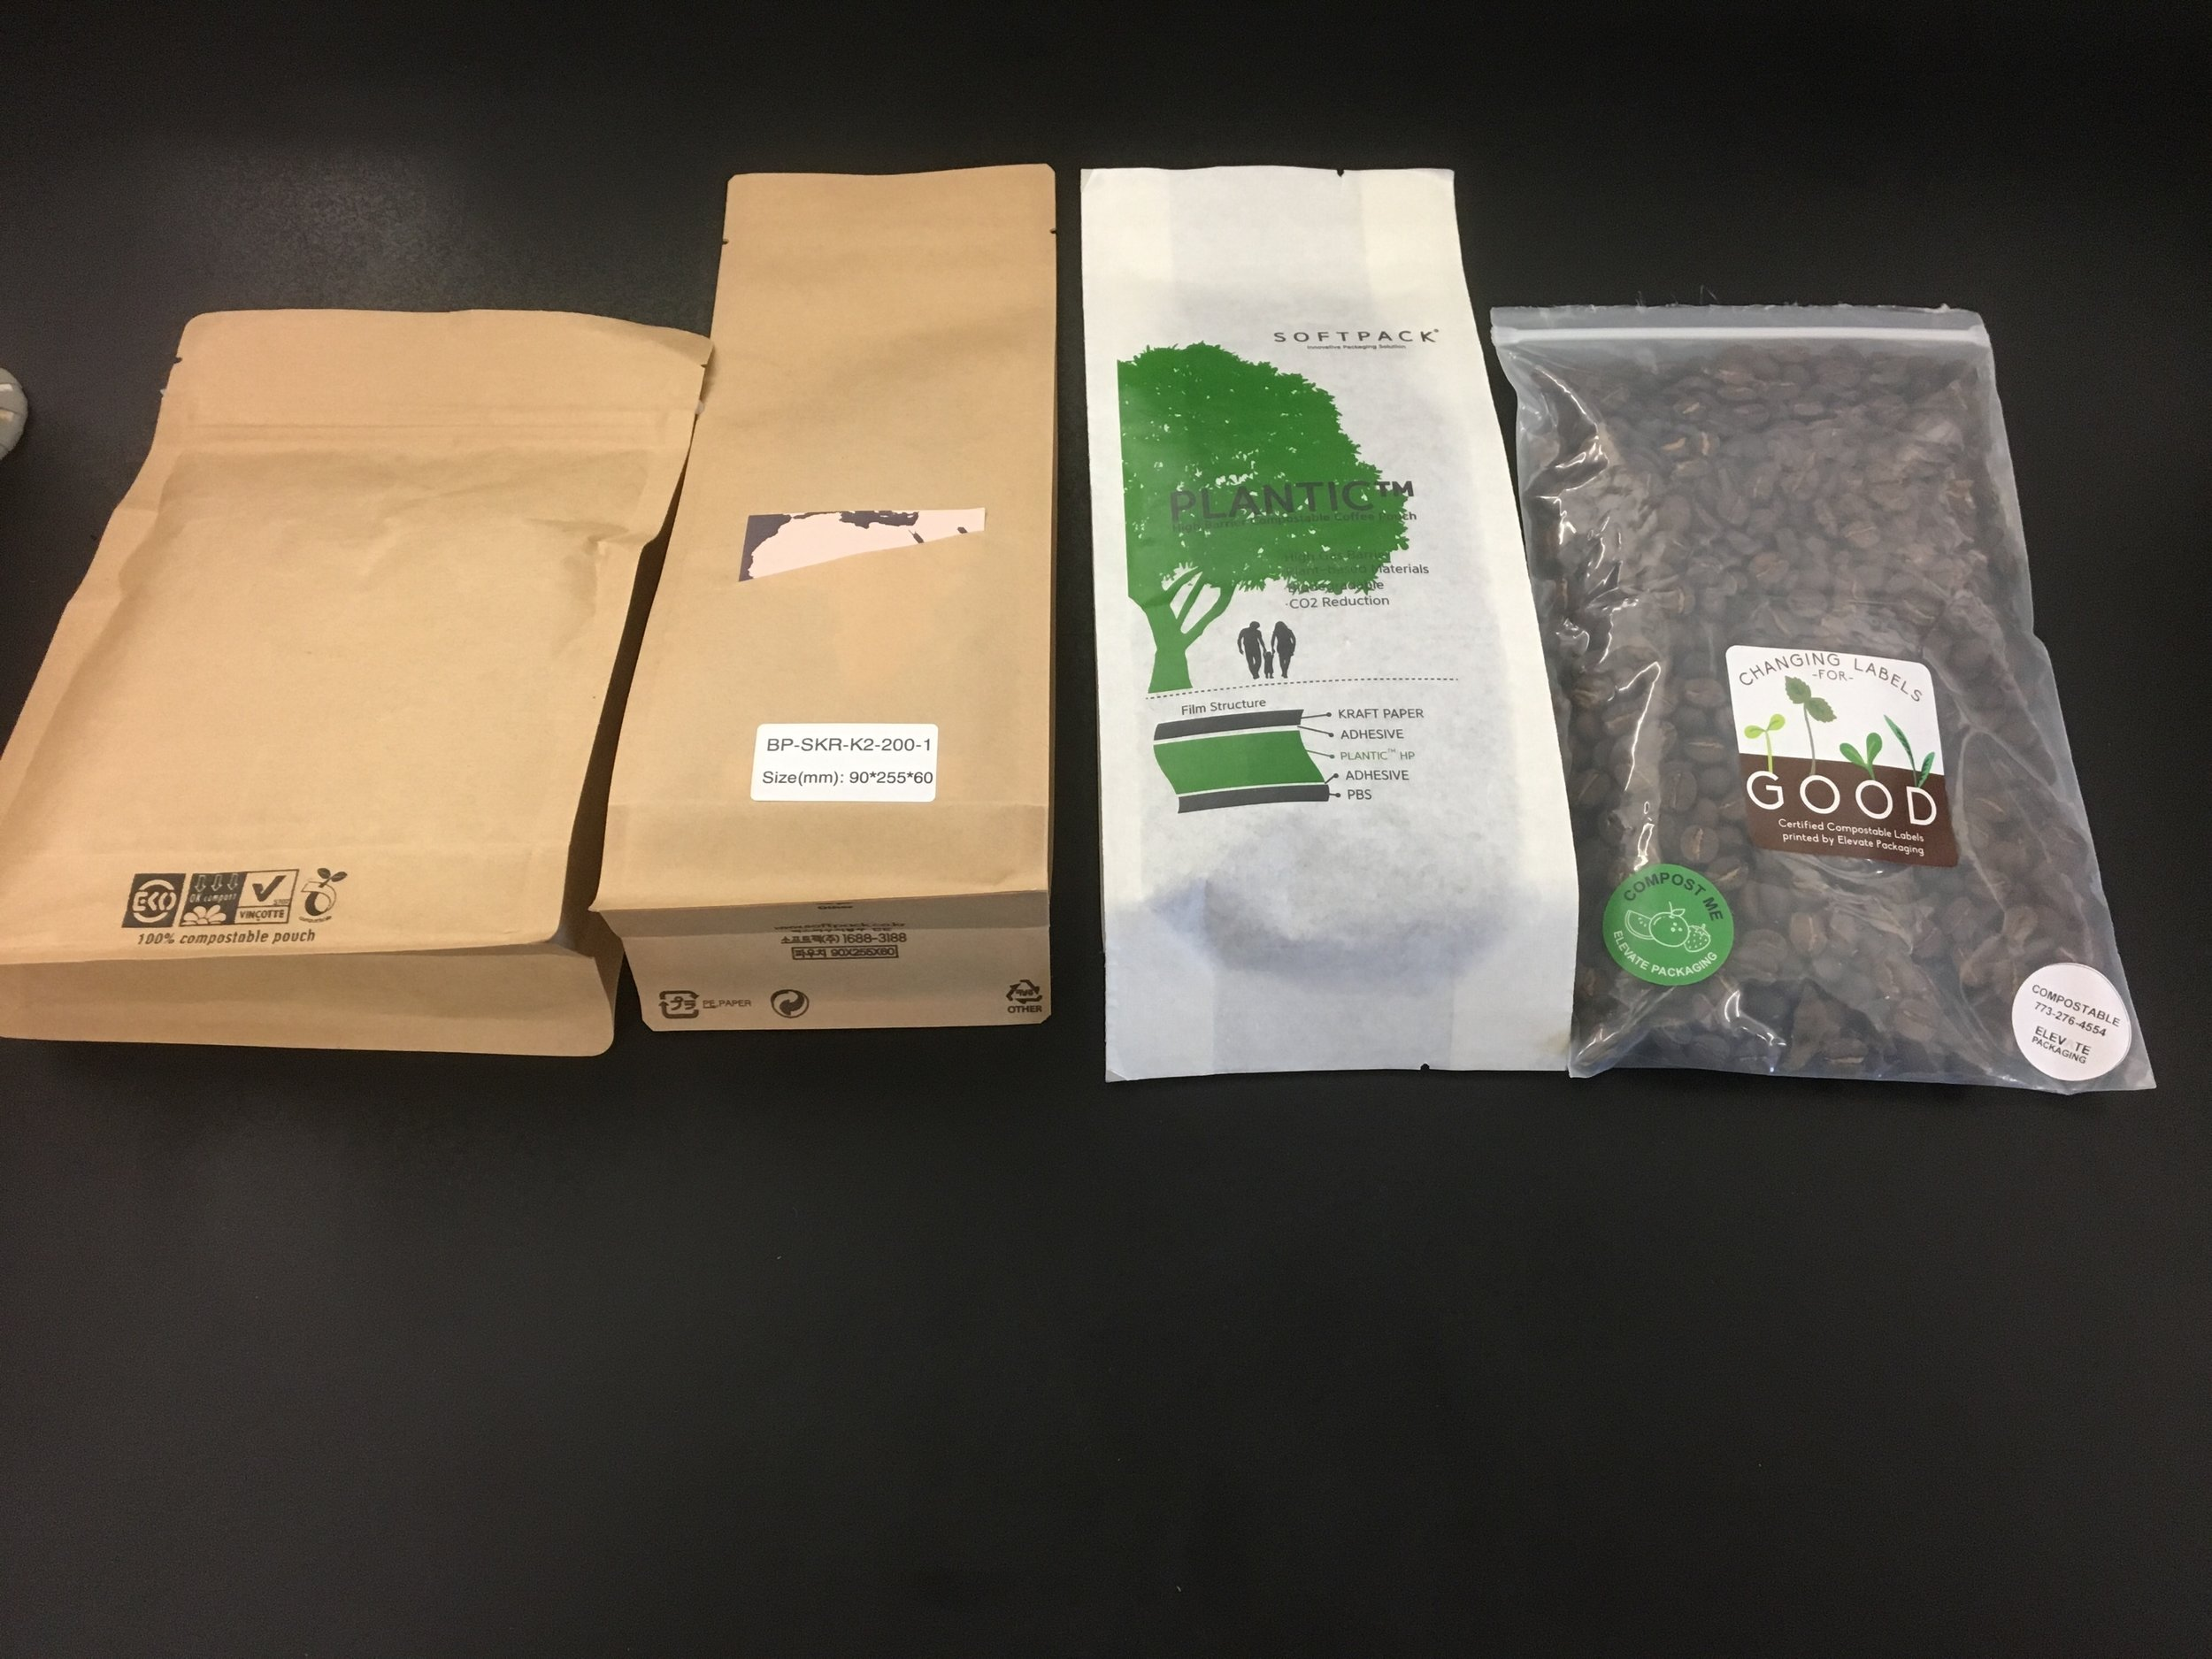 Some of the packaging KS Coffee has put through oxygen, heat sealing, and composting testing.